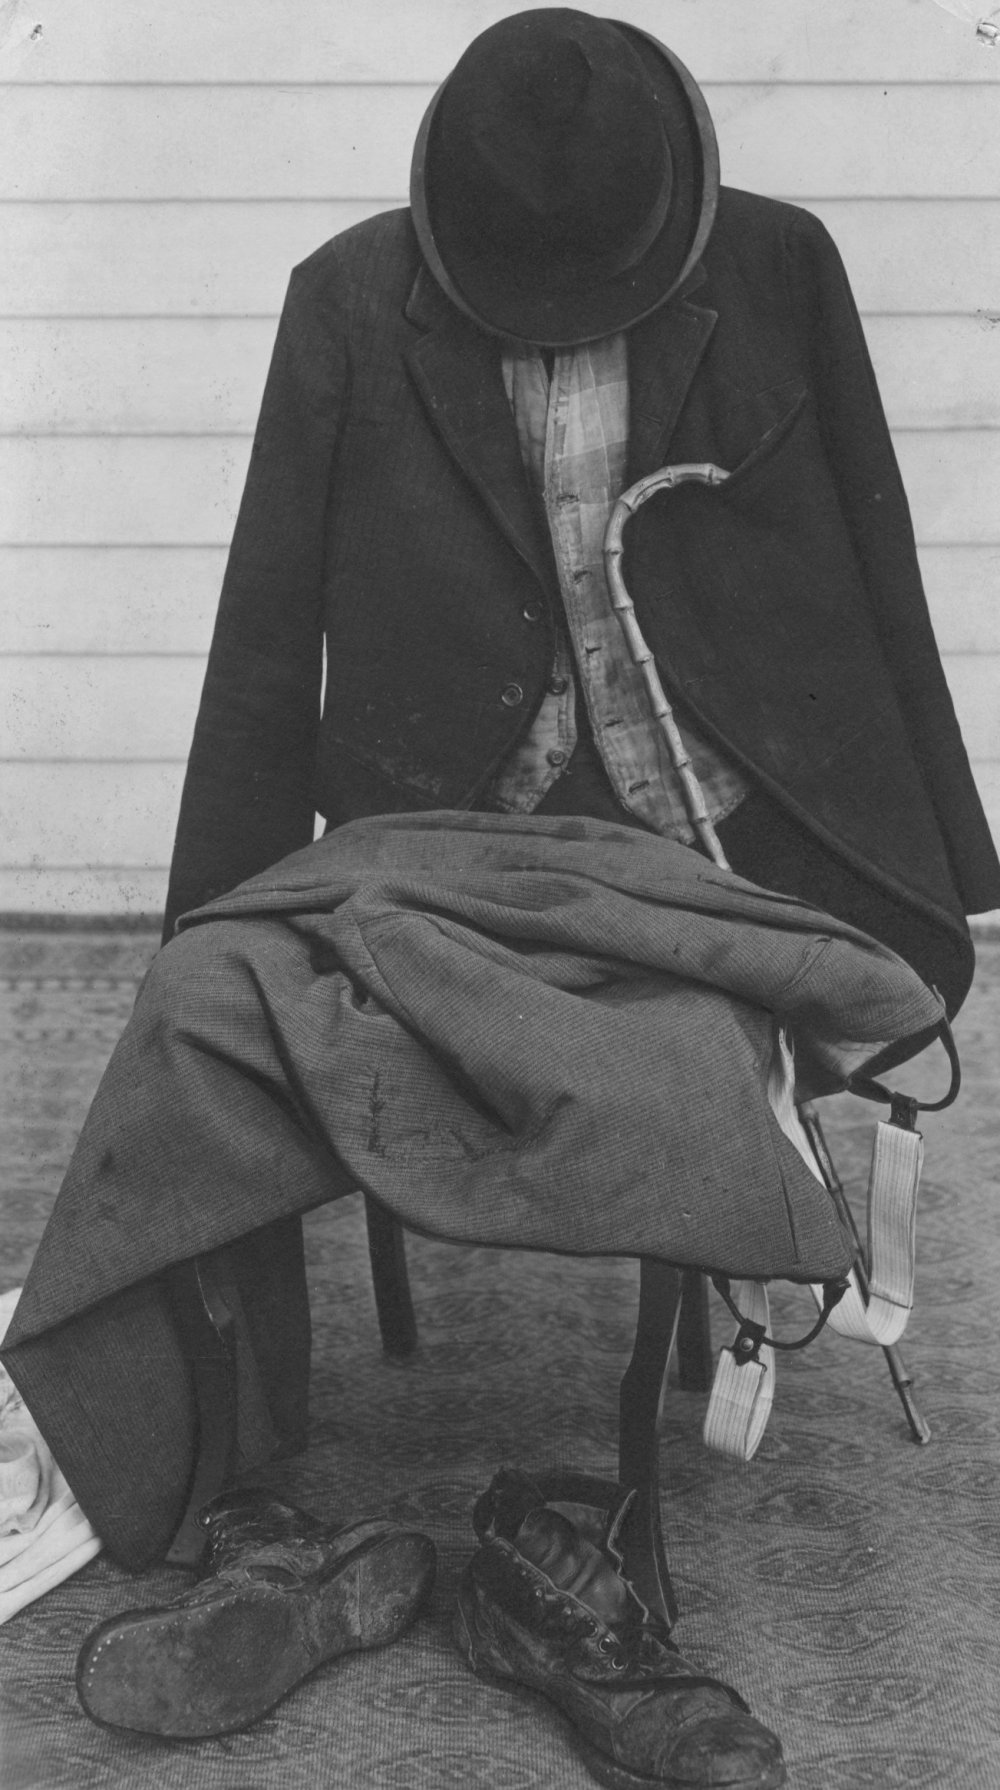 The Tramp costume laid out across a chair, date and photographer unknown